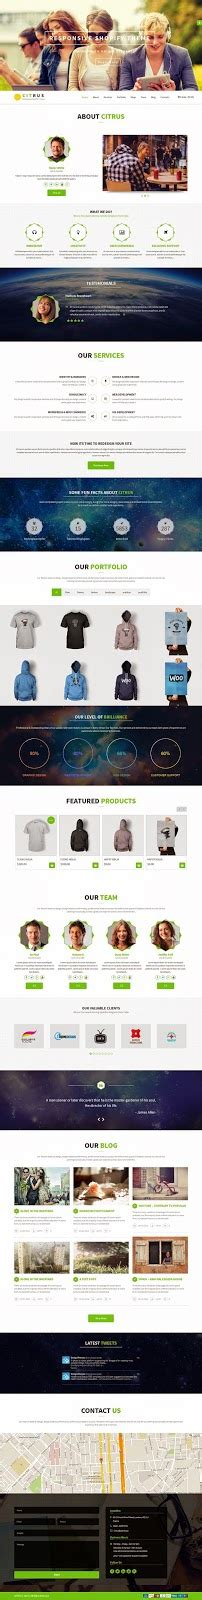 shopify themes best 2015 citrus one page parallax multipurpose ecommerce theme 2015